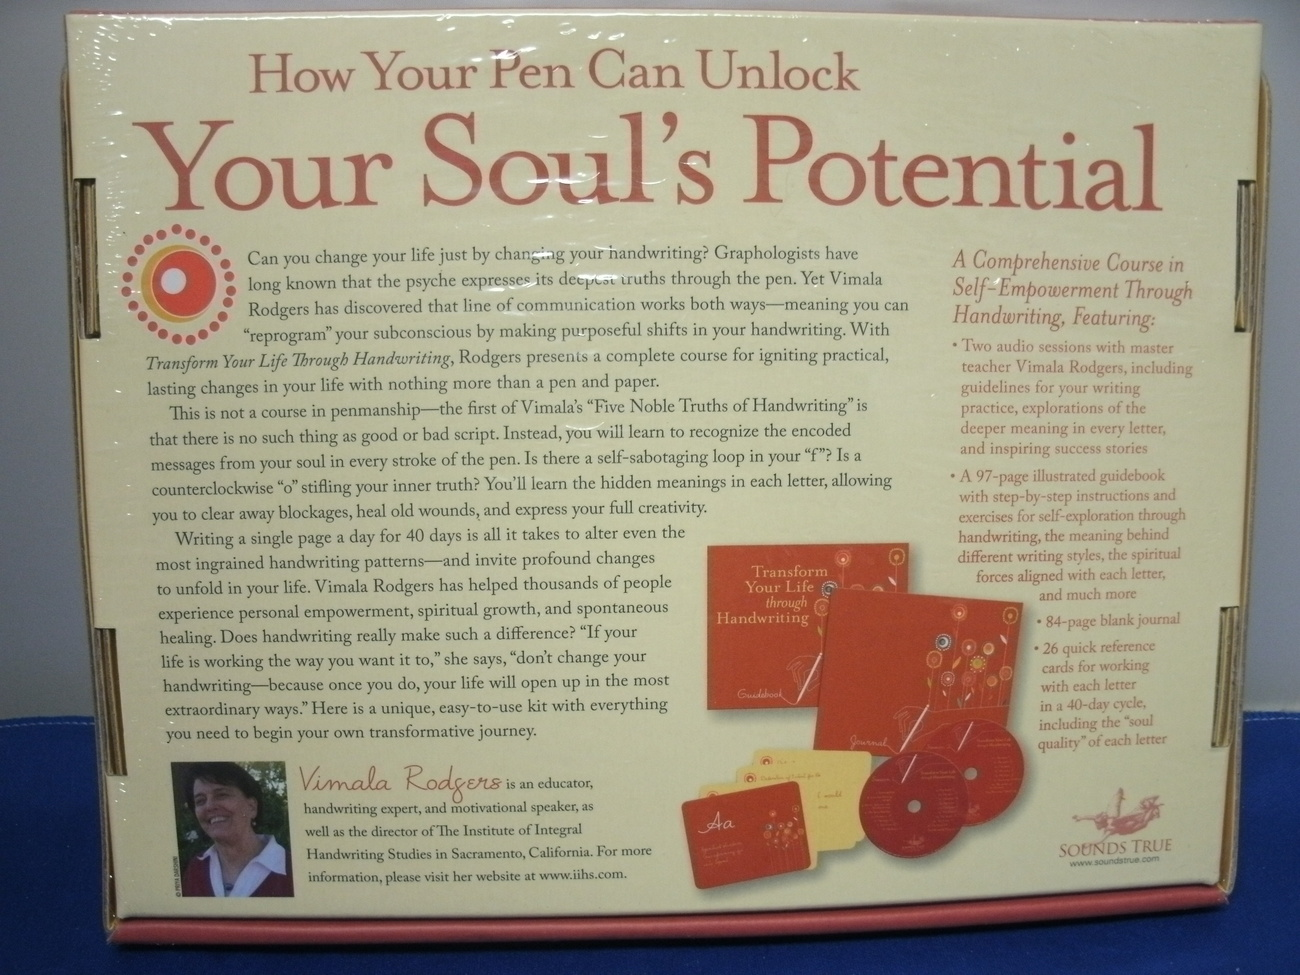 Transform Your Life Through Handwriting by Vimala Rodgers - NEW  image 3